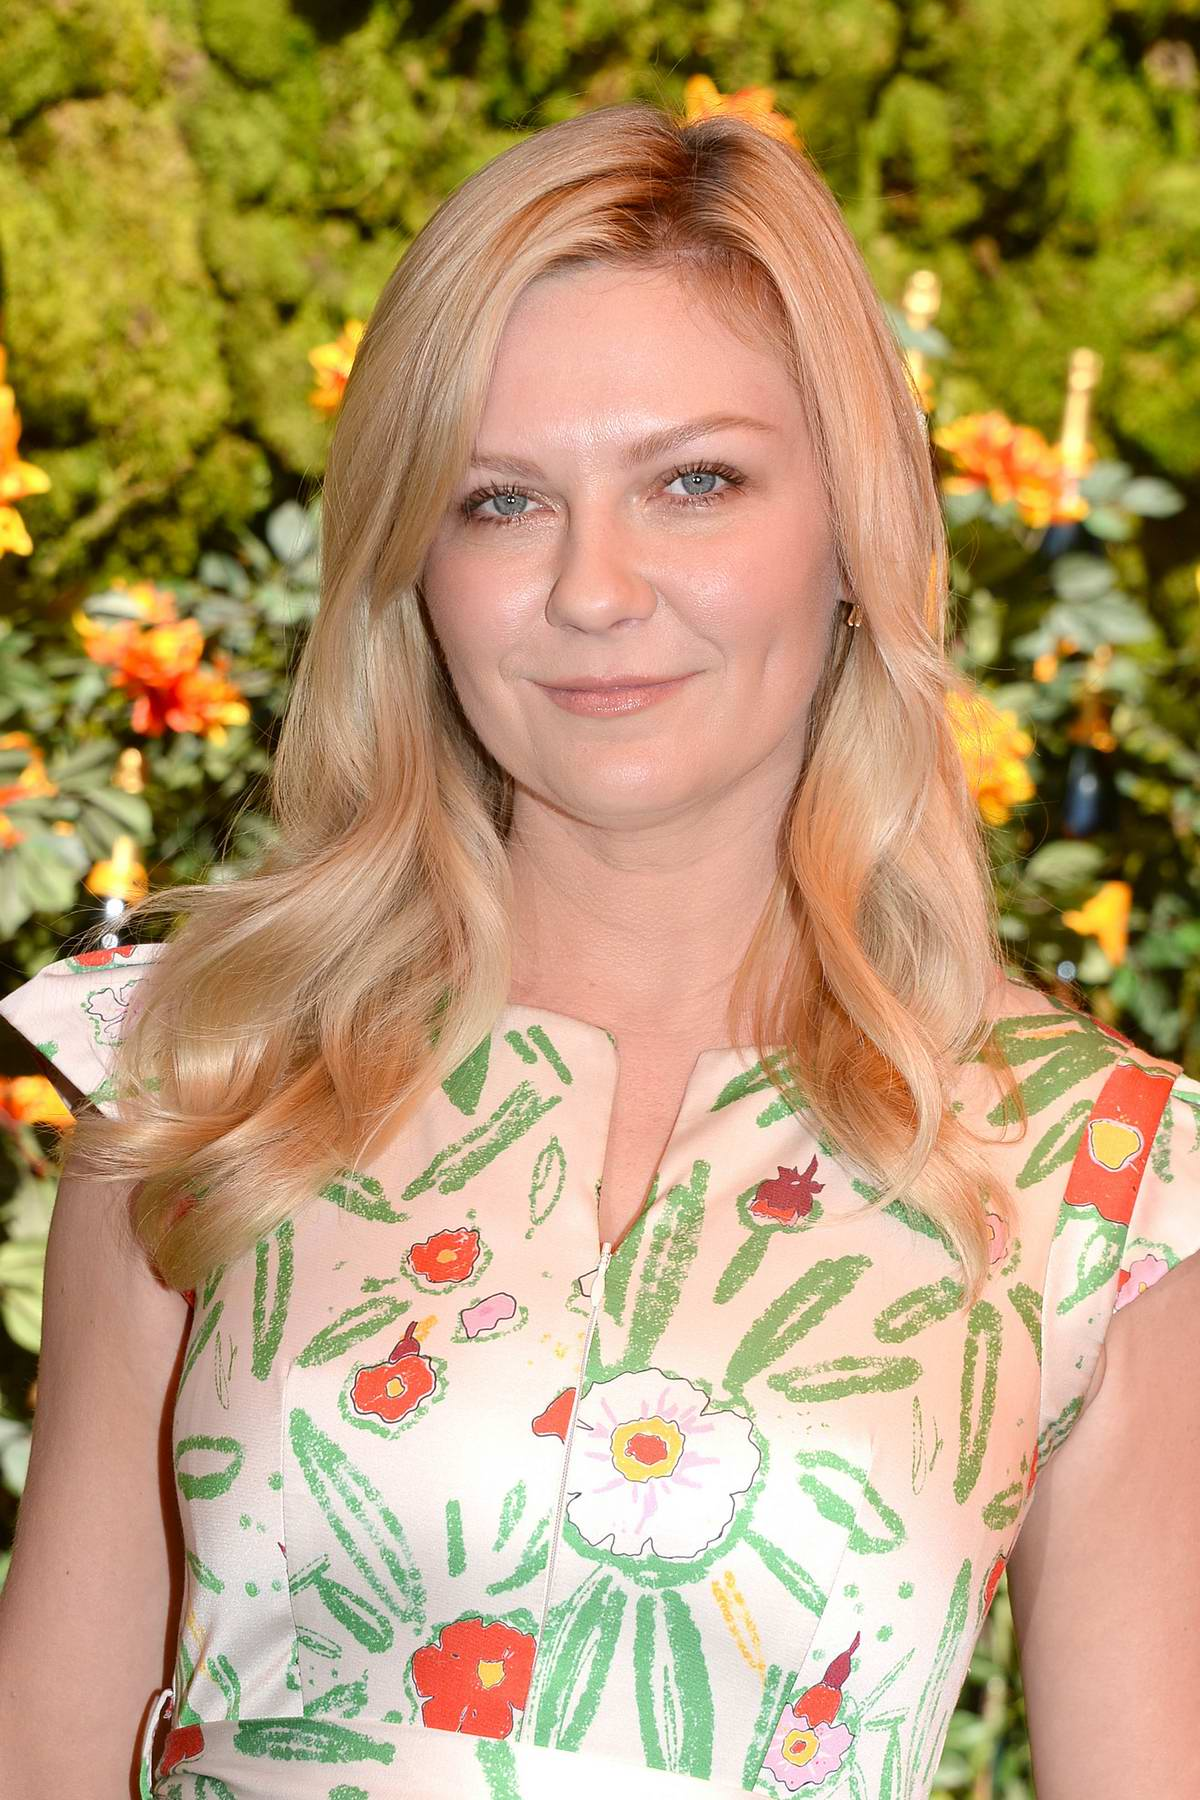 Kirsten Dunst attends the 10th annual Veuve Clicquot Polo Classic at Will Rogers State Park in Los Angeles